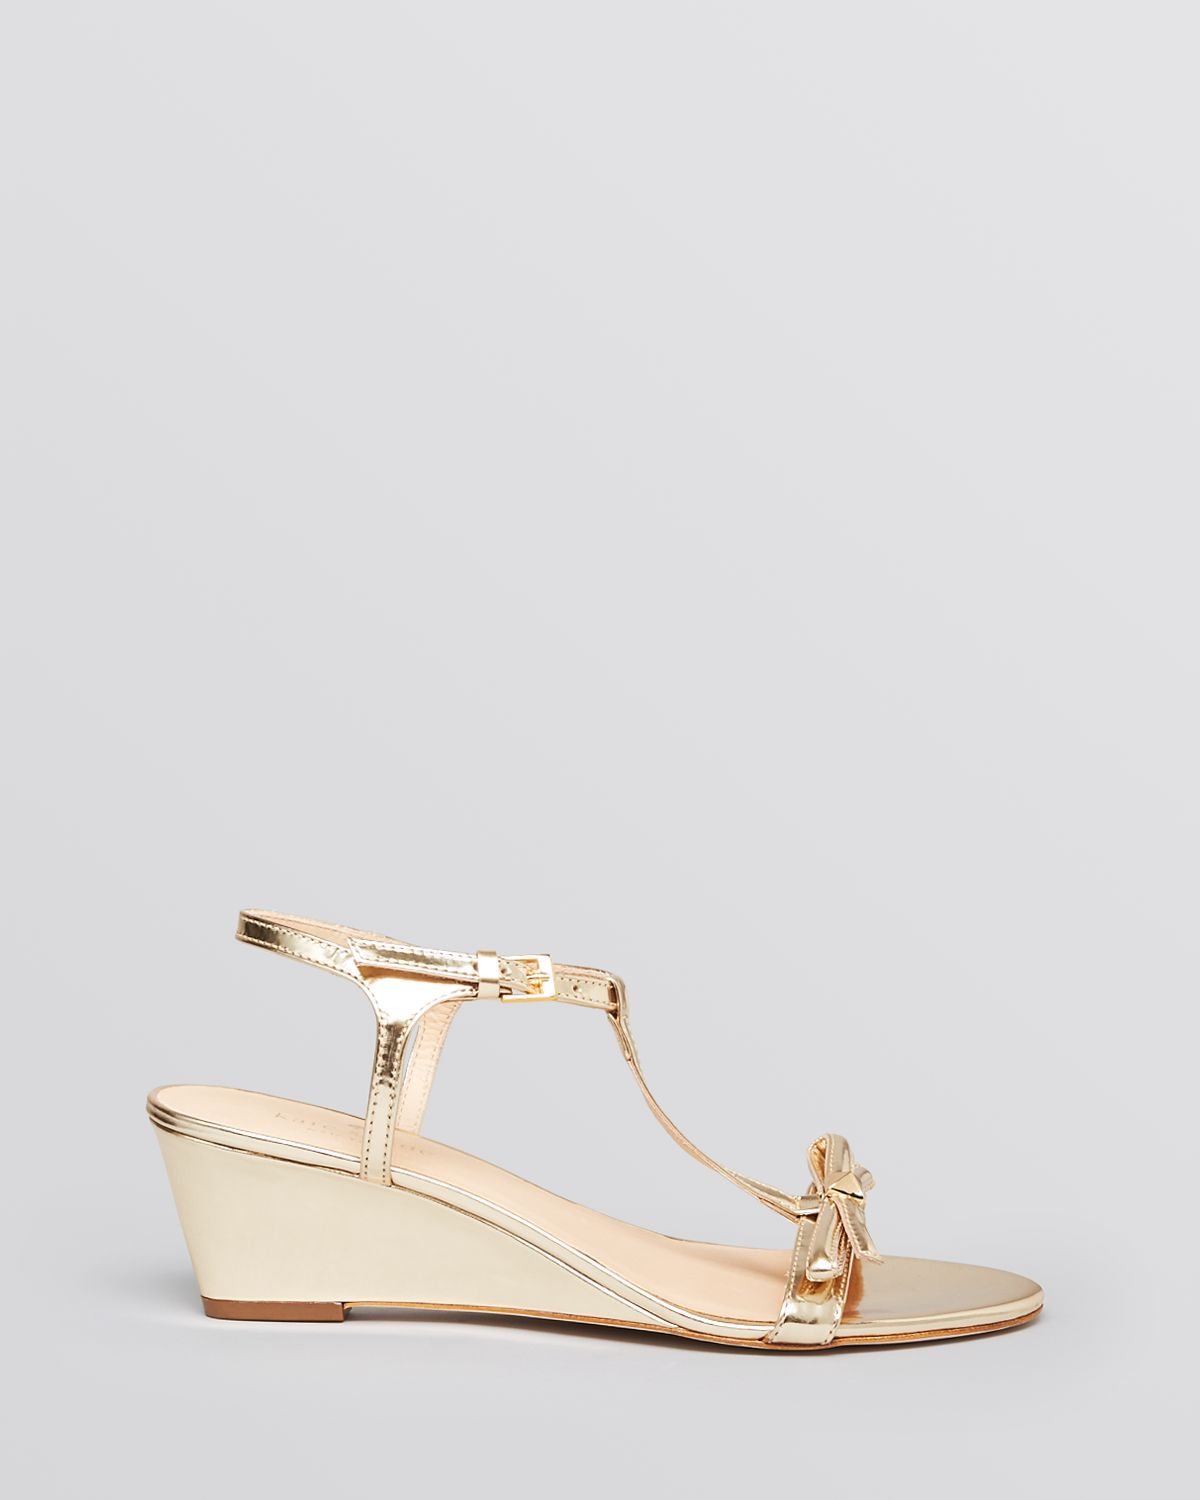 005e69d7e11 Lyst - Kate Spade Wedge Sandals Donna T Strap in Metallic